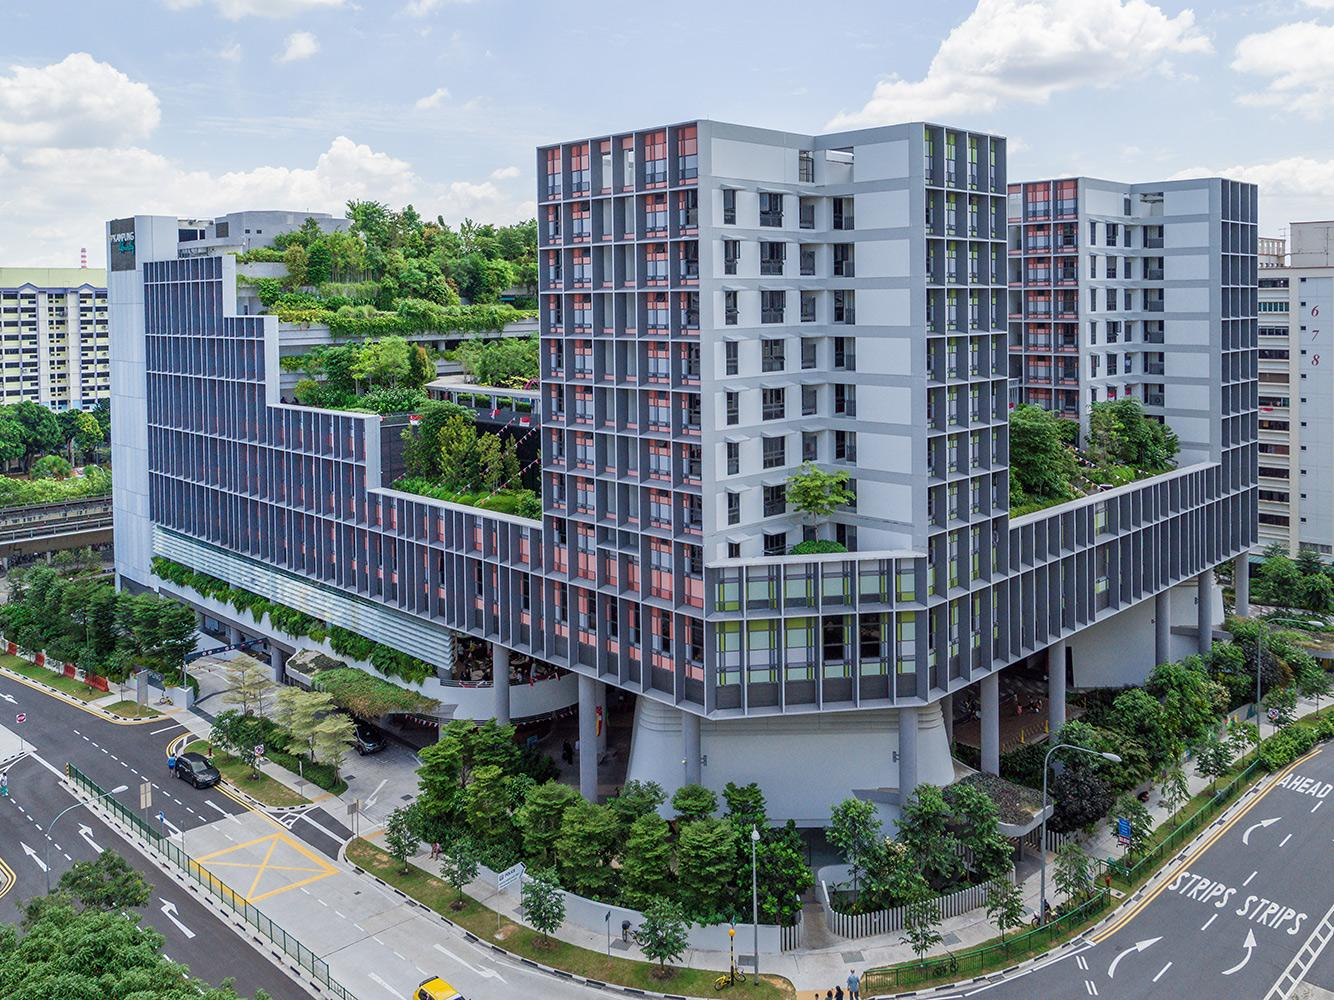 Singapore's Kampung Admiralty by WOHA